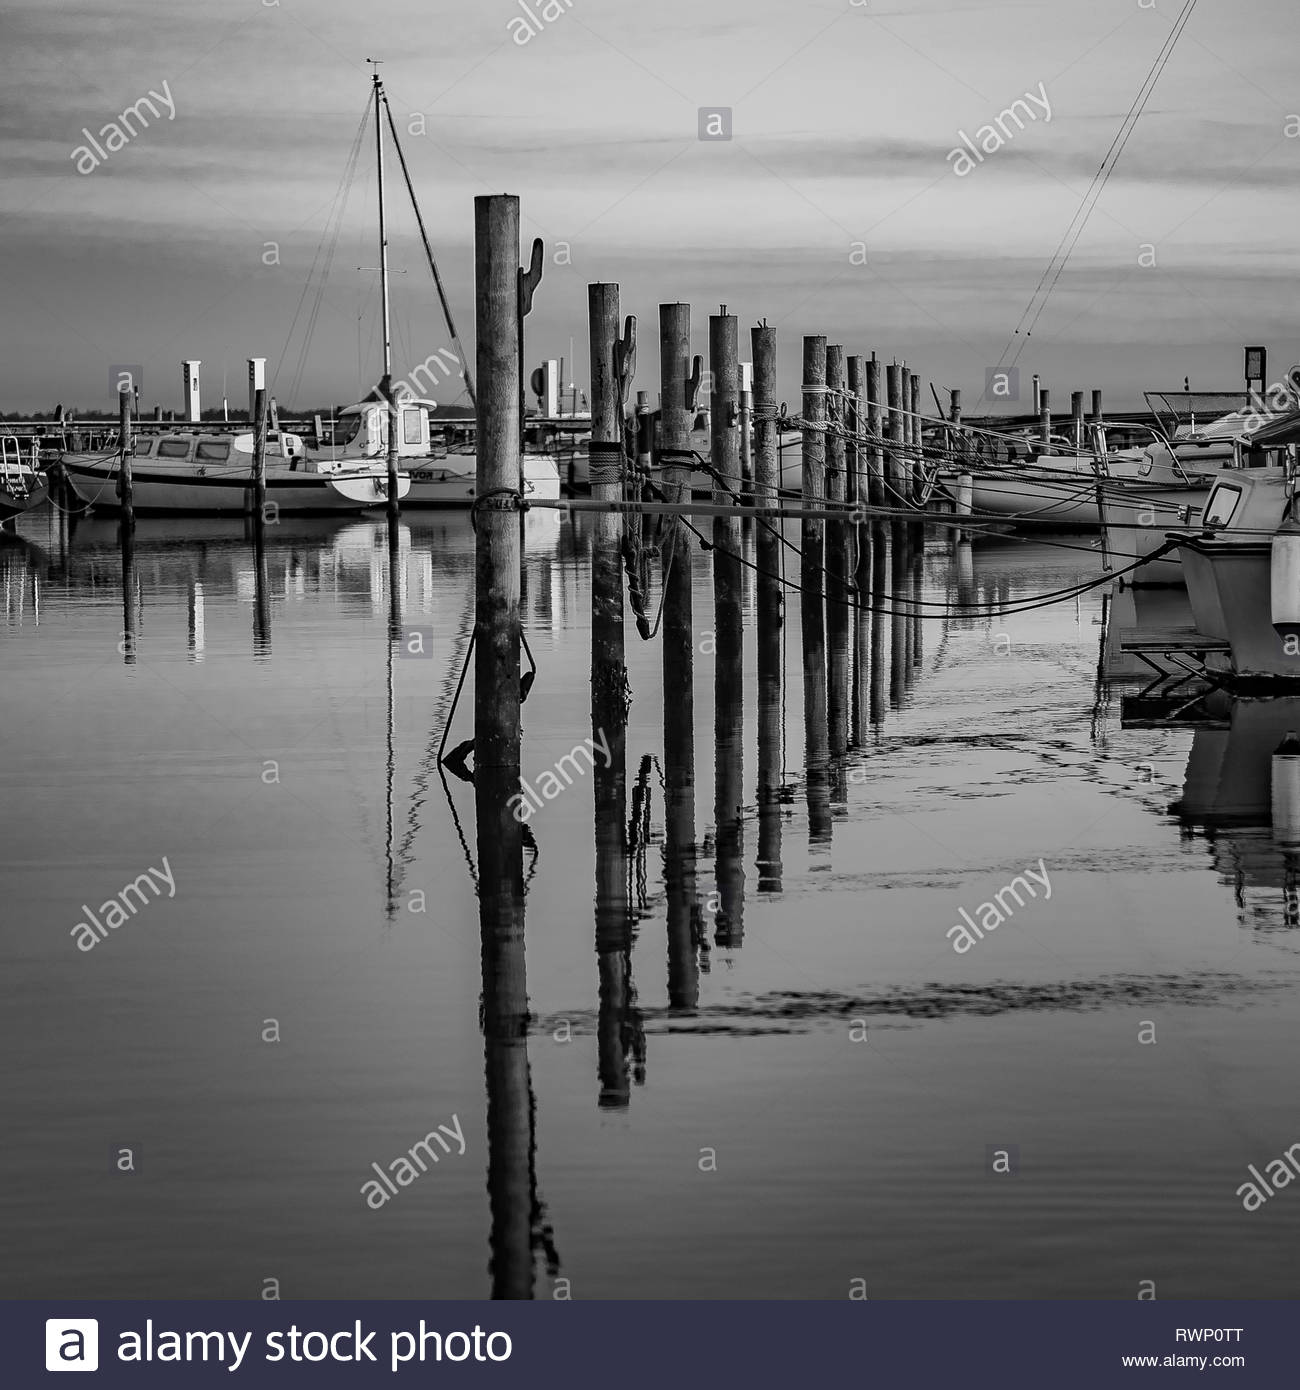 A quiet evening at Lynaes harbor, Denmark, with poles reflecting in the water - Stock Image